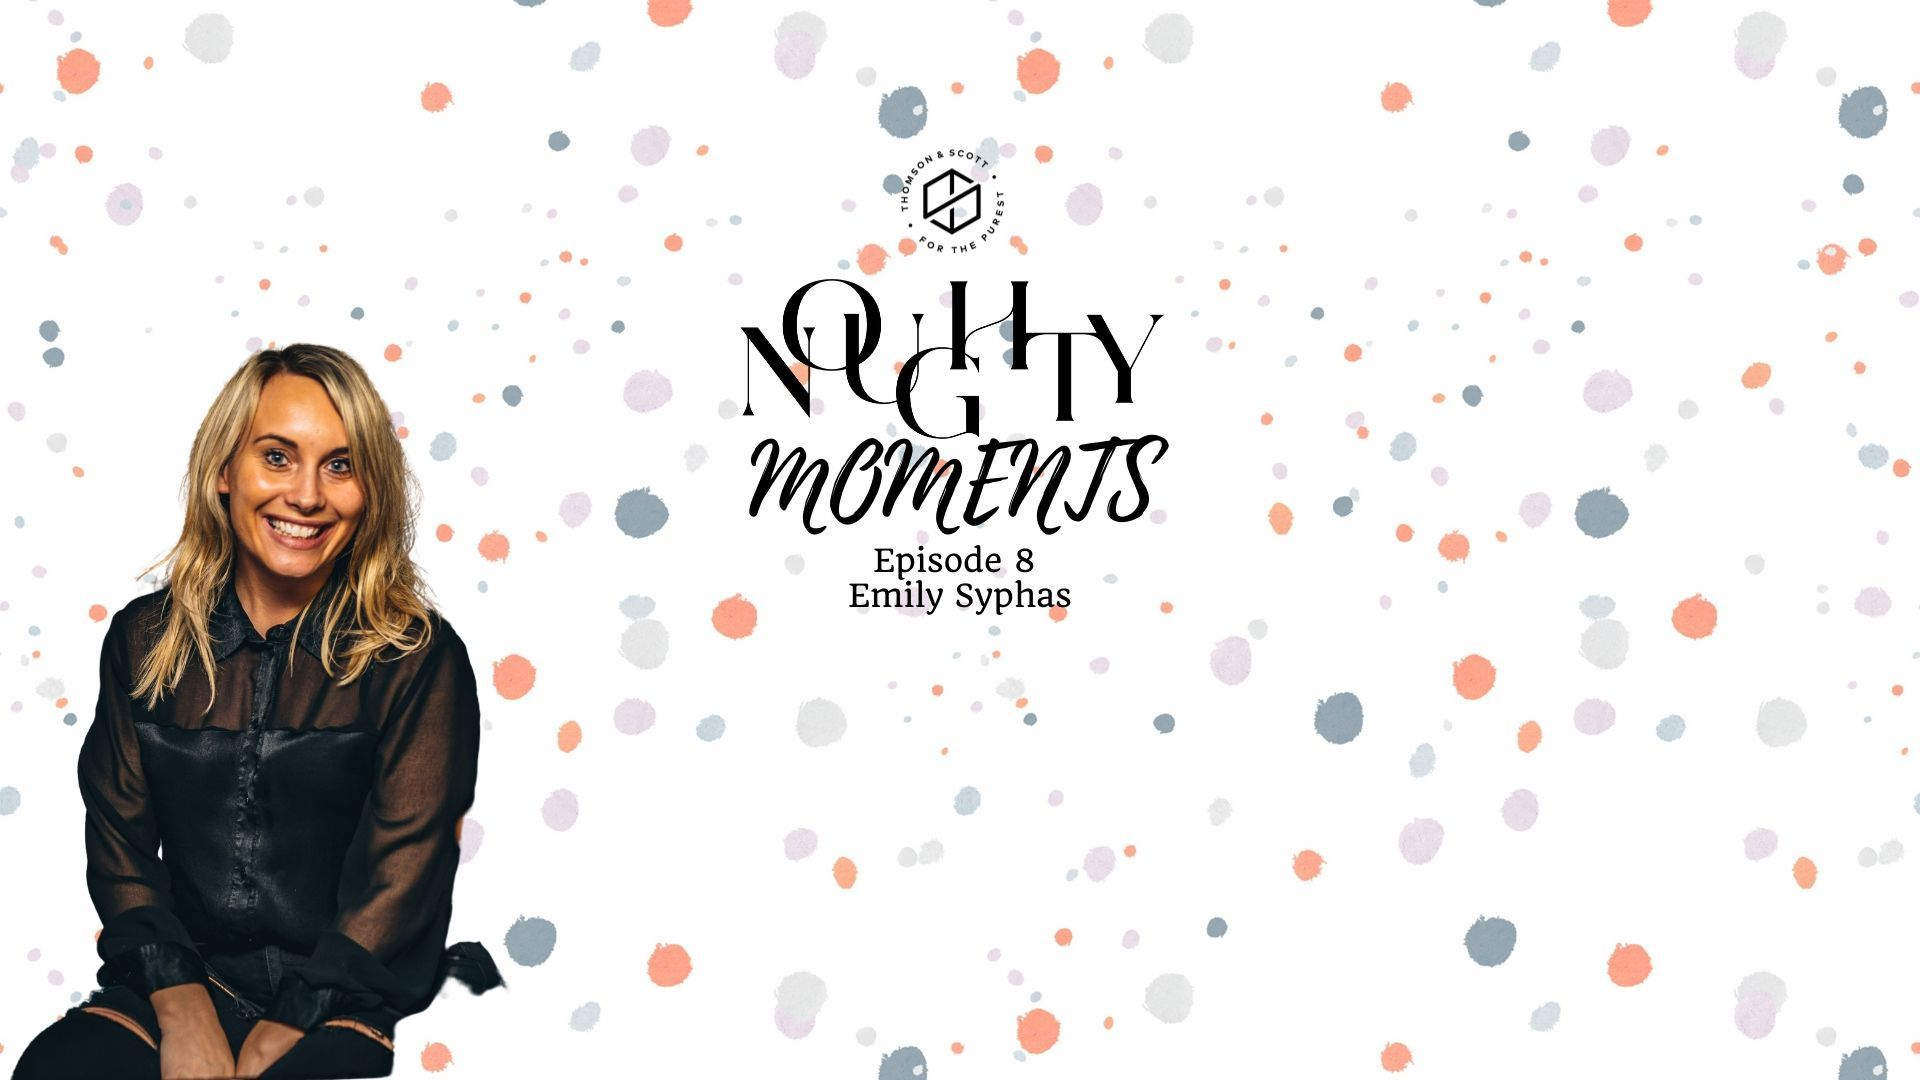 This week for Noughty Moments Episode 8 we are joined by Emily Syphas. The out of the box decisions that went against the grain for success.